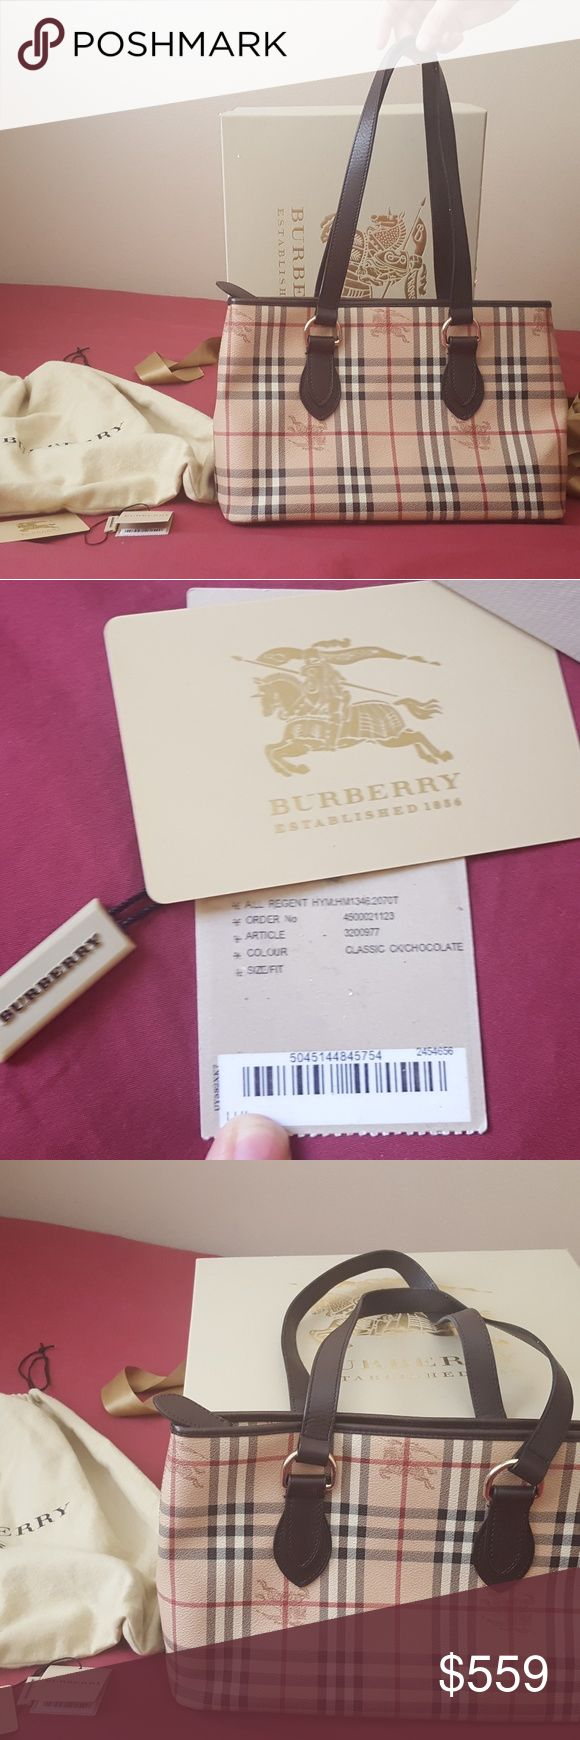 "Authentic Burberry Haymarket check regent tote Authentic Burberry Regent Tote, it's in VERY GOOD preloved condition, no rip, no tear, some rub on the corners & trim, nothing big, just minor things.Inside & pockets are good, comes with everything,  box, dust bag, tags,  card, ribbon. Made in Italy, zipper smooth. The big box does has a tear on the side.  It was purchased from South Coast mall. 9 1/4""H X 13 3/4""W X 5""D.   I'll record & take pic at the post office during shipping Burberry Bags…"